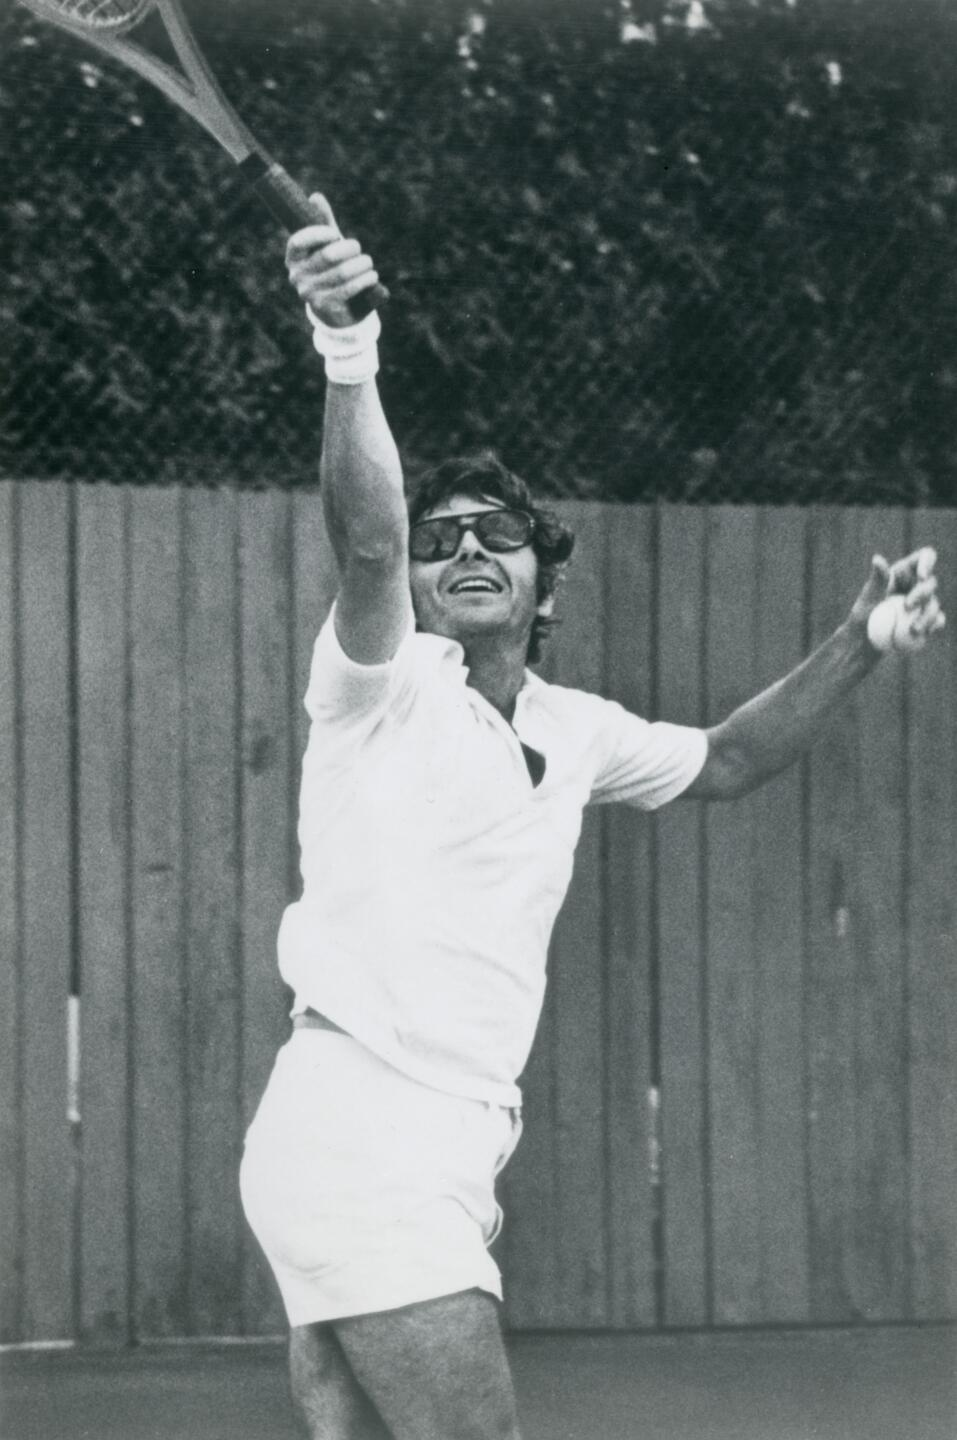 Jerry Orzoff Playing tennis